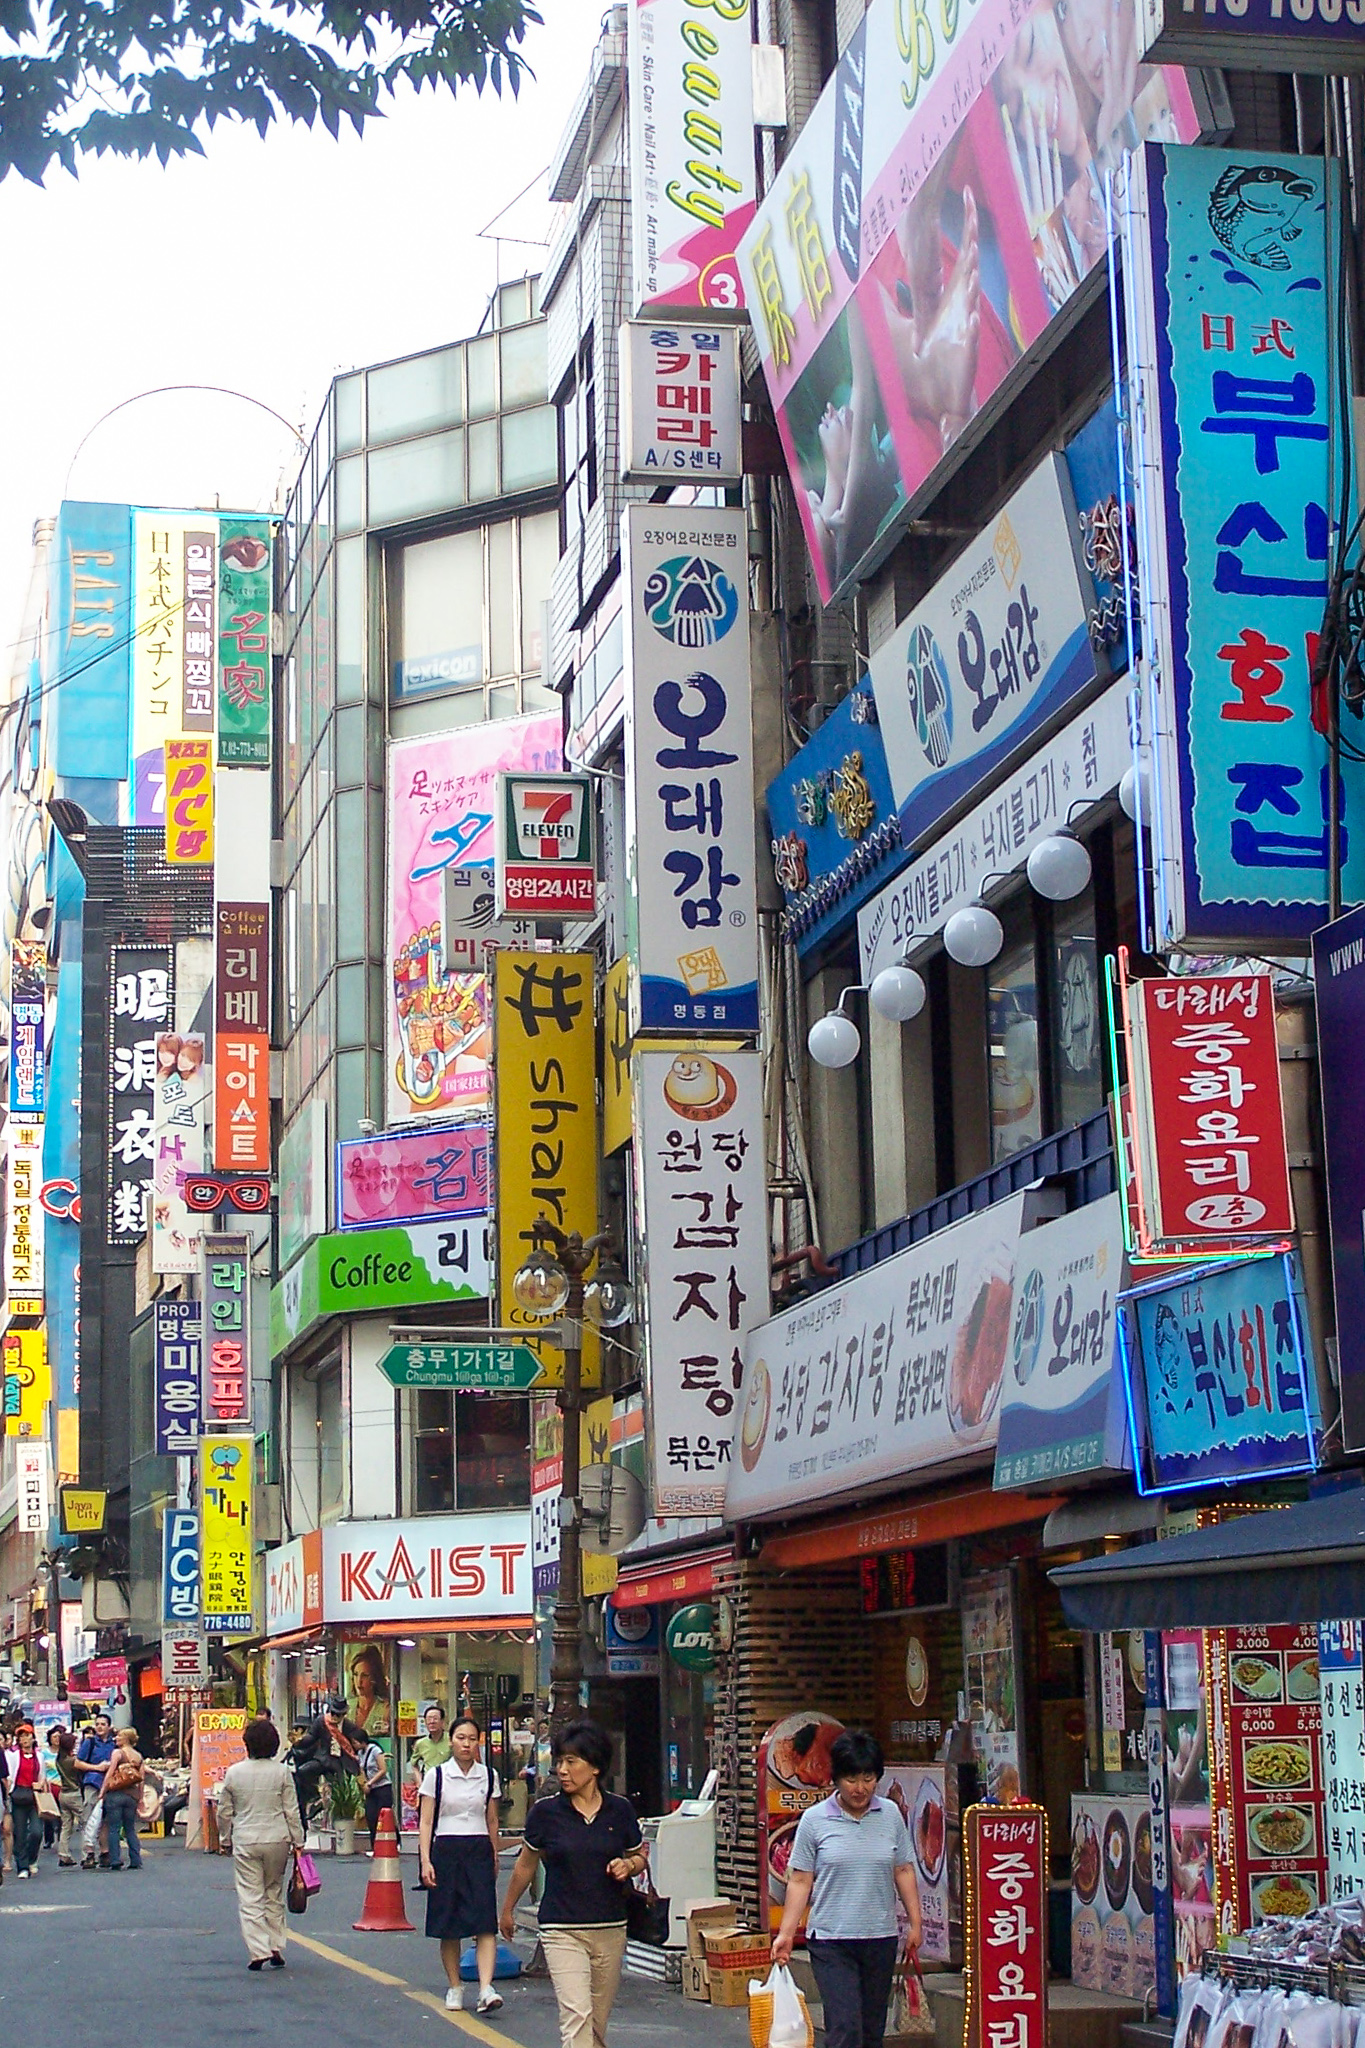 Seoul is often overlooked for budget-friendly travel